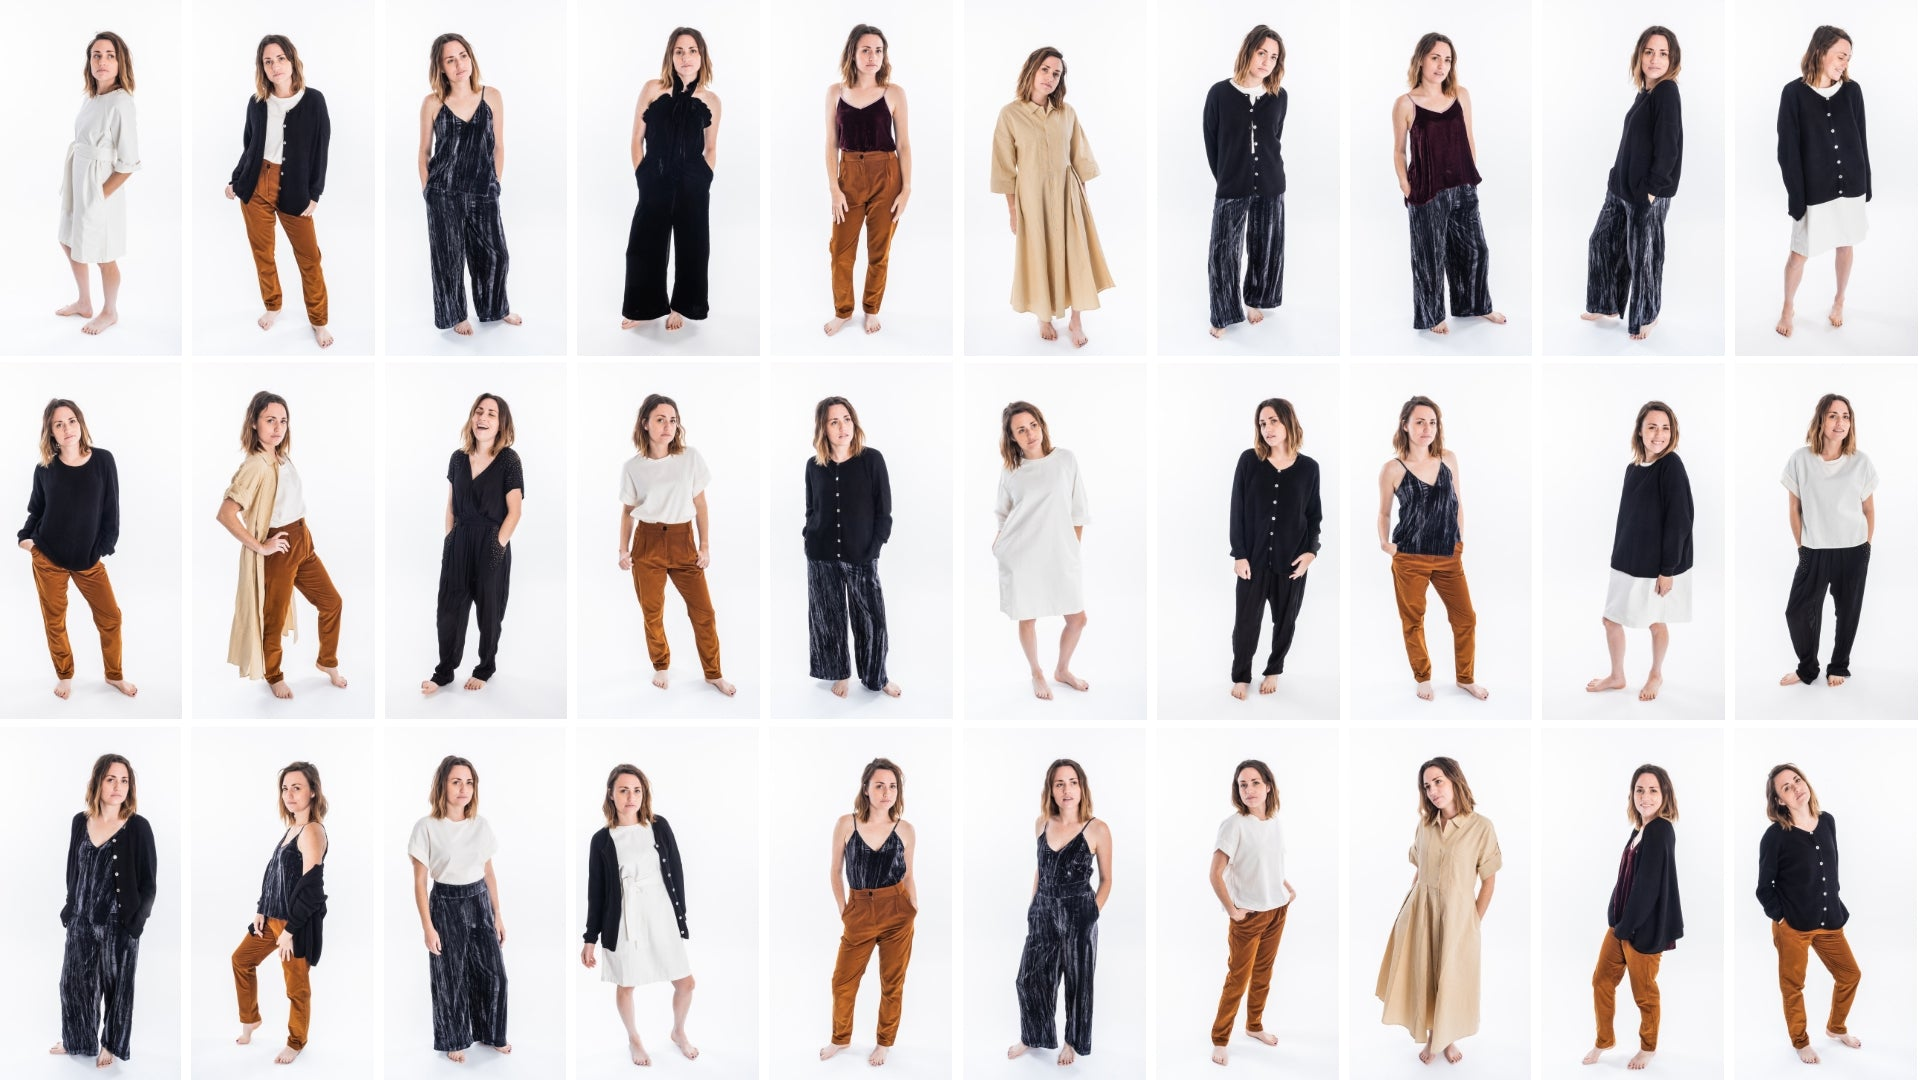 The Festive Capsule Looks | Joon + Co. Capsule Wardrobes